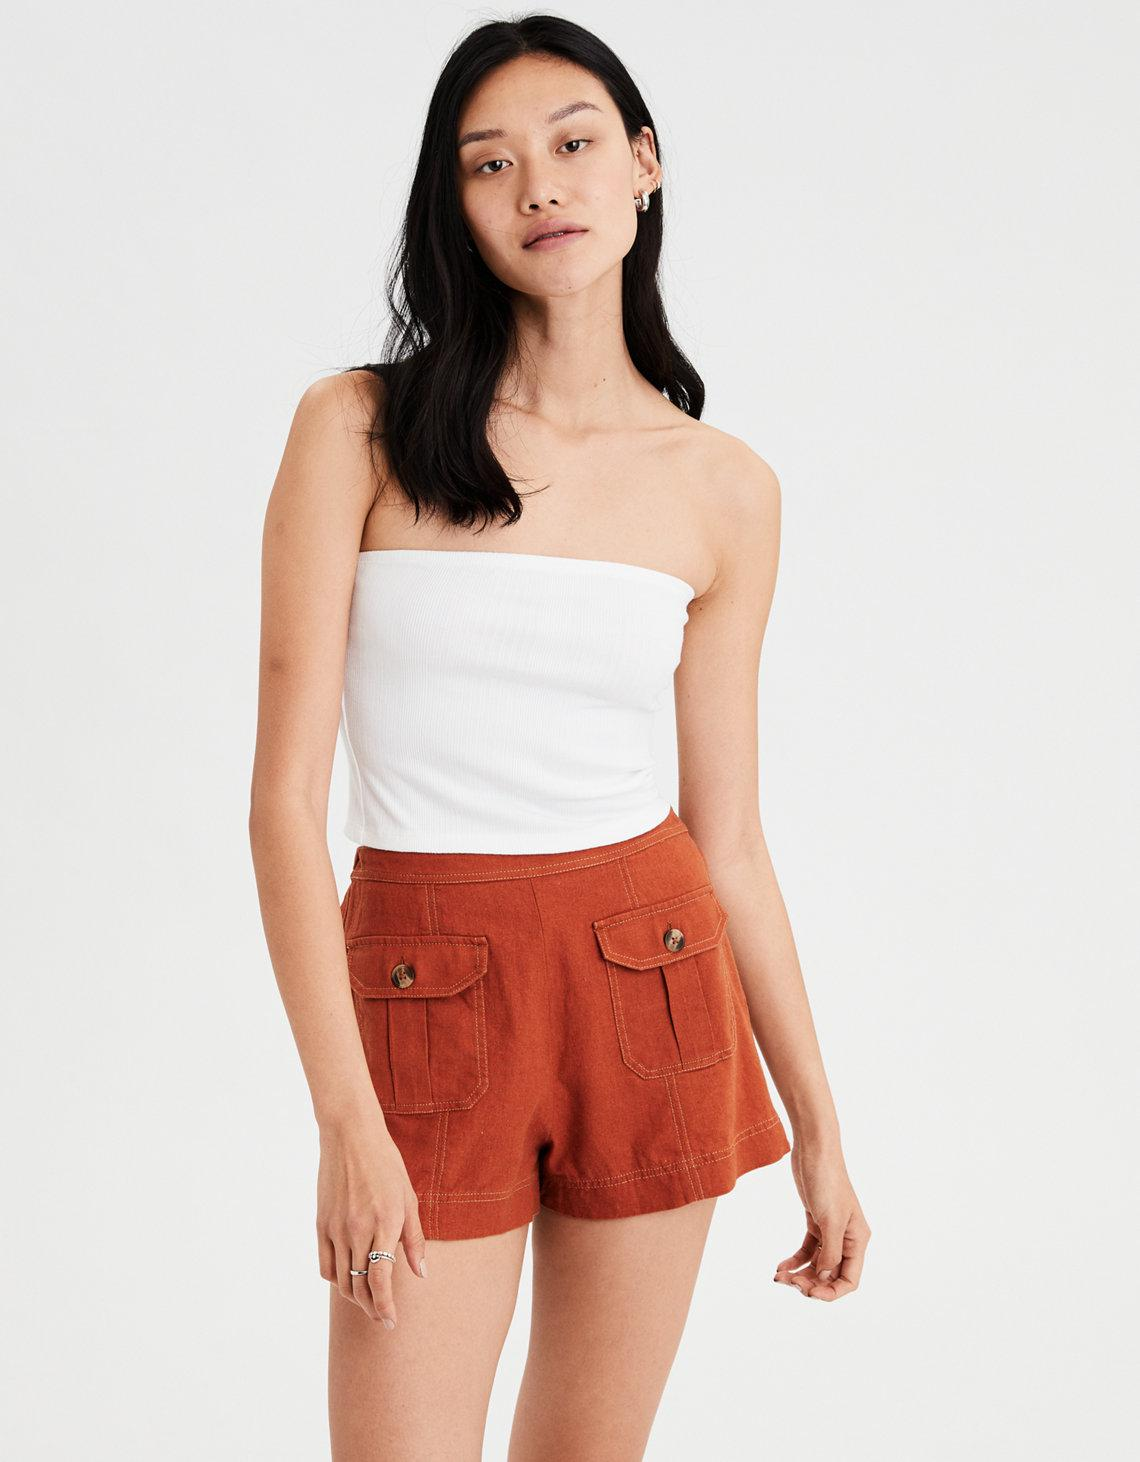 db418282e5 Lyst - American Eagle Ae Ribbed Tube Top in White